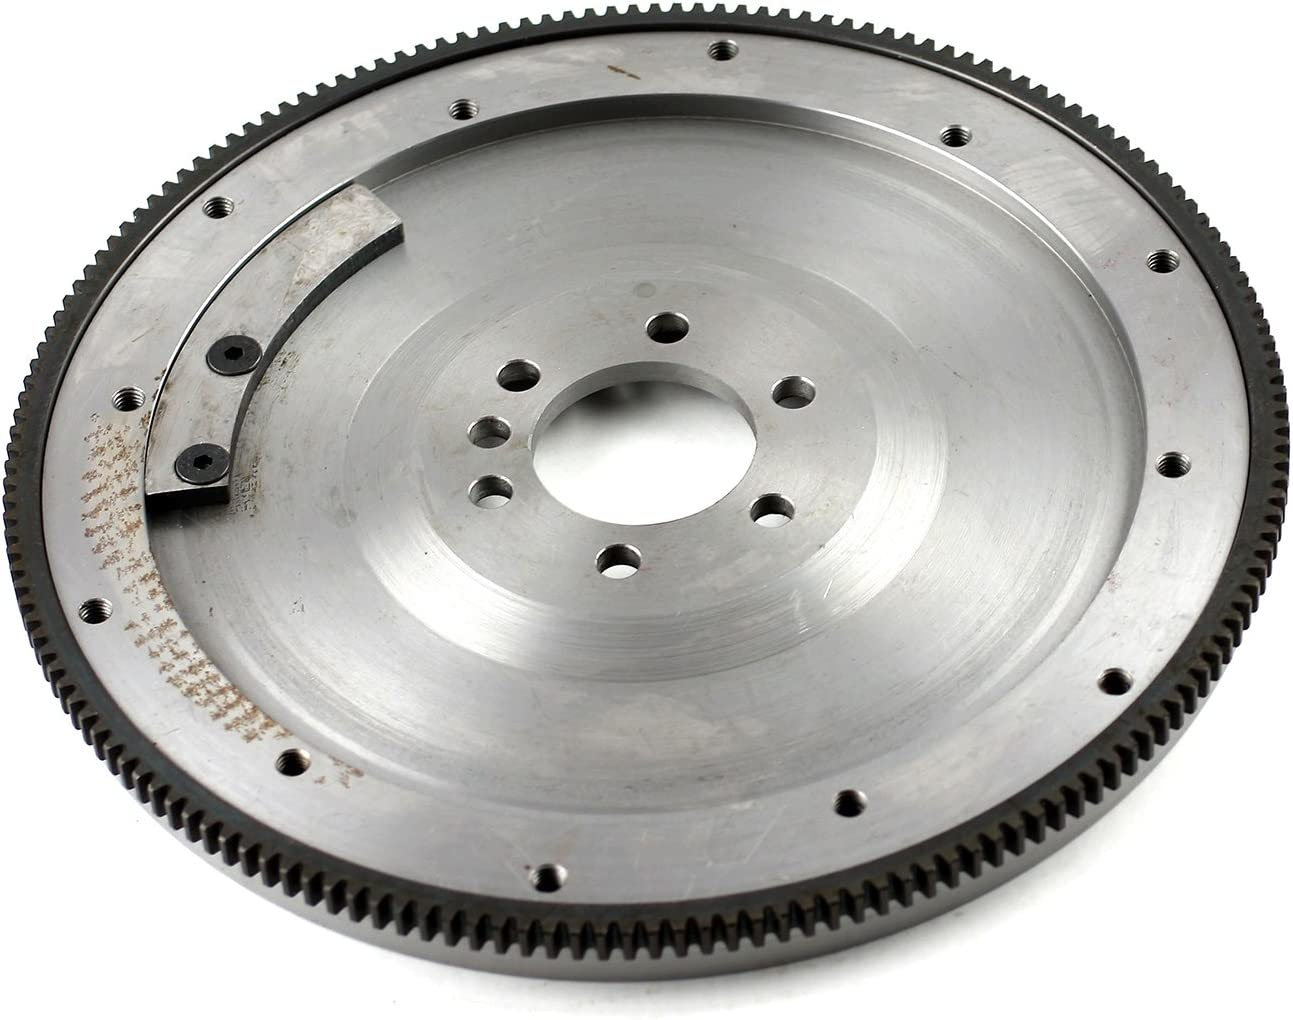 Chevy BBC 454 2Pc Rms 168 Tooth 11 External Bal Billet Steel SFI Flywheel